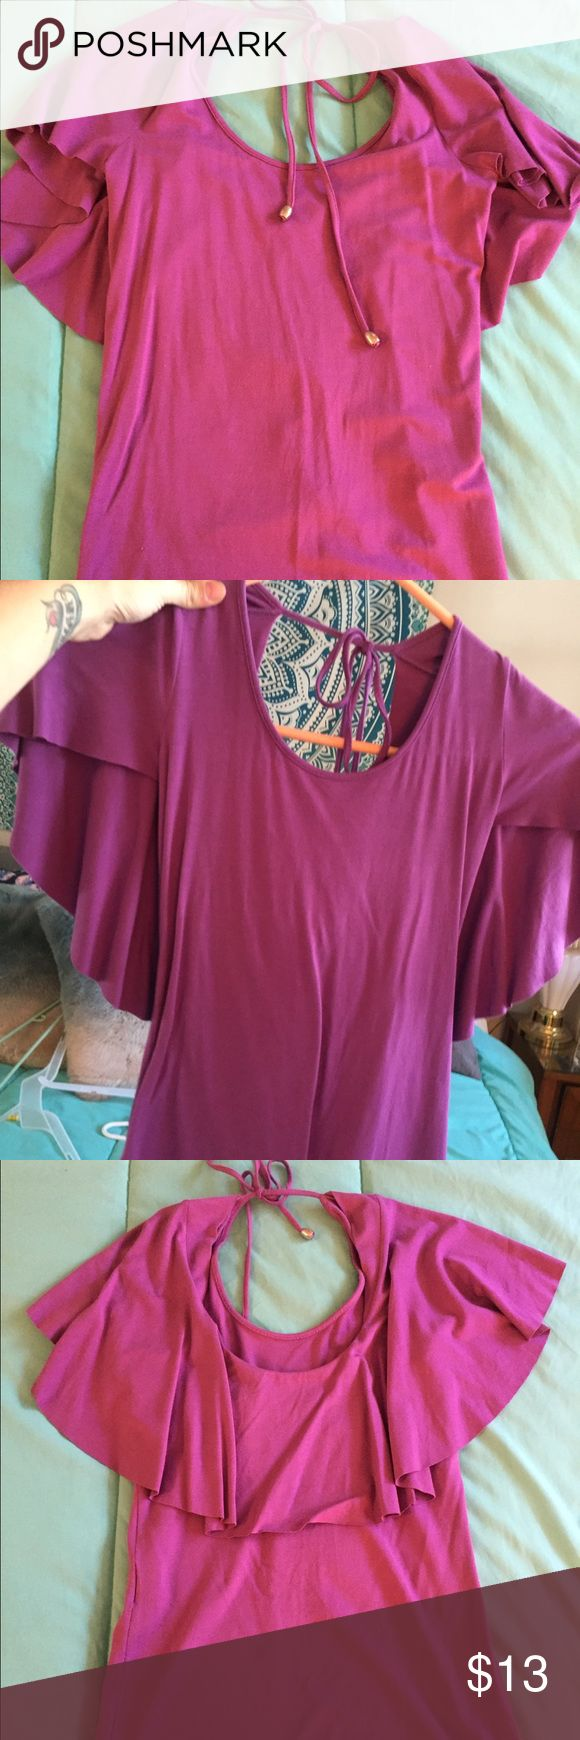 NWOT Armani Exchange shirt NWOT and NEVER been worn Armani Exchange Blouse. Beautiful purple color and the material is soft and stretchy! Ask me questions!!💕 A/X Armani Exchange Tops